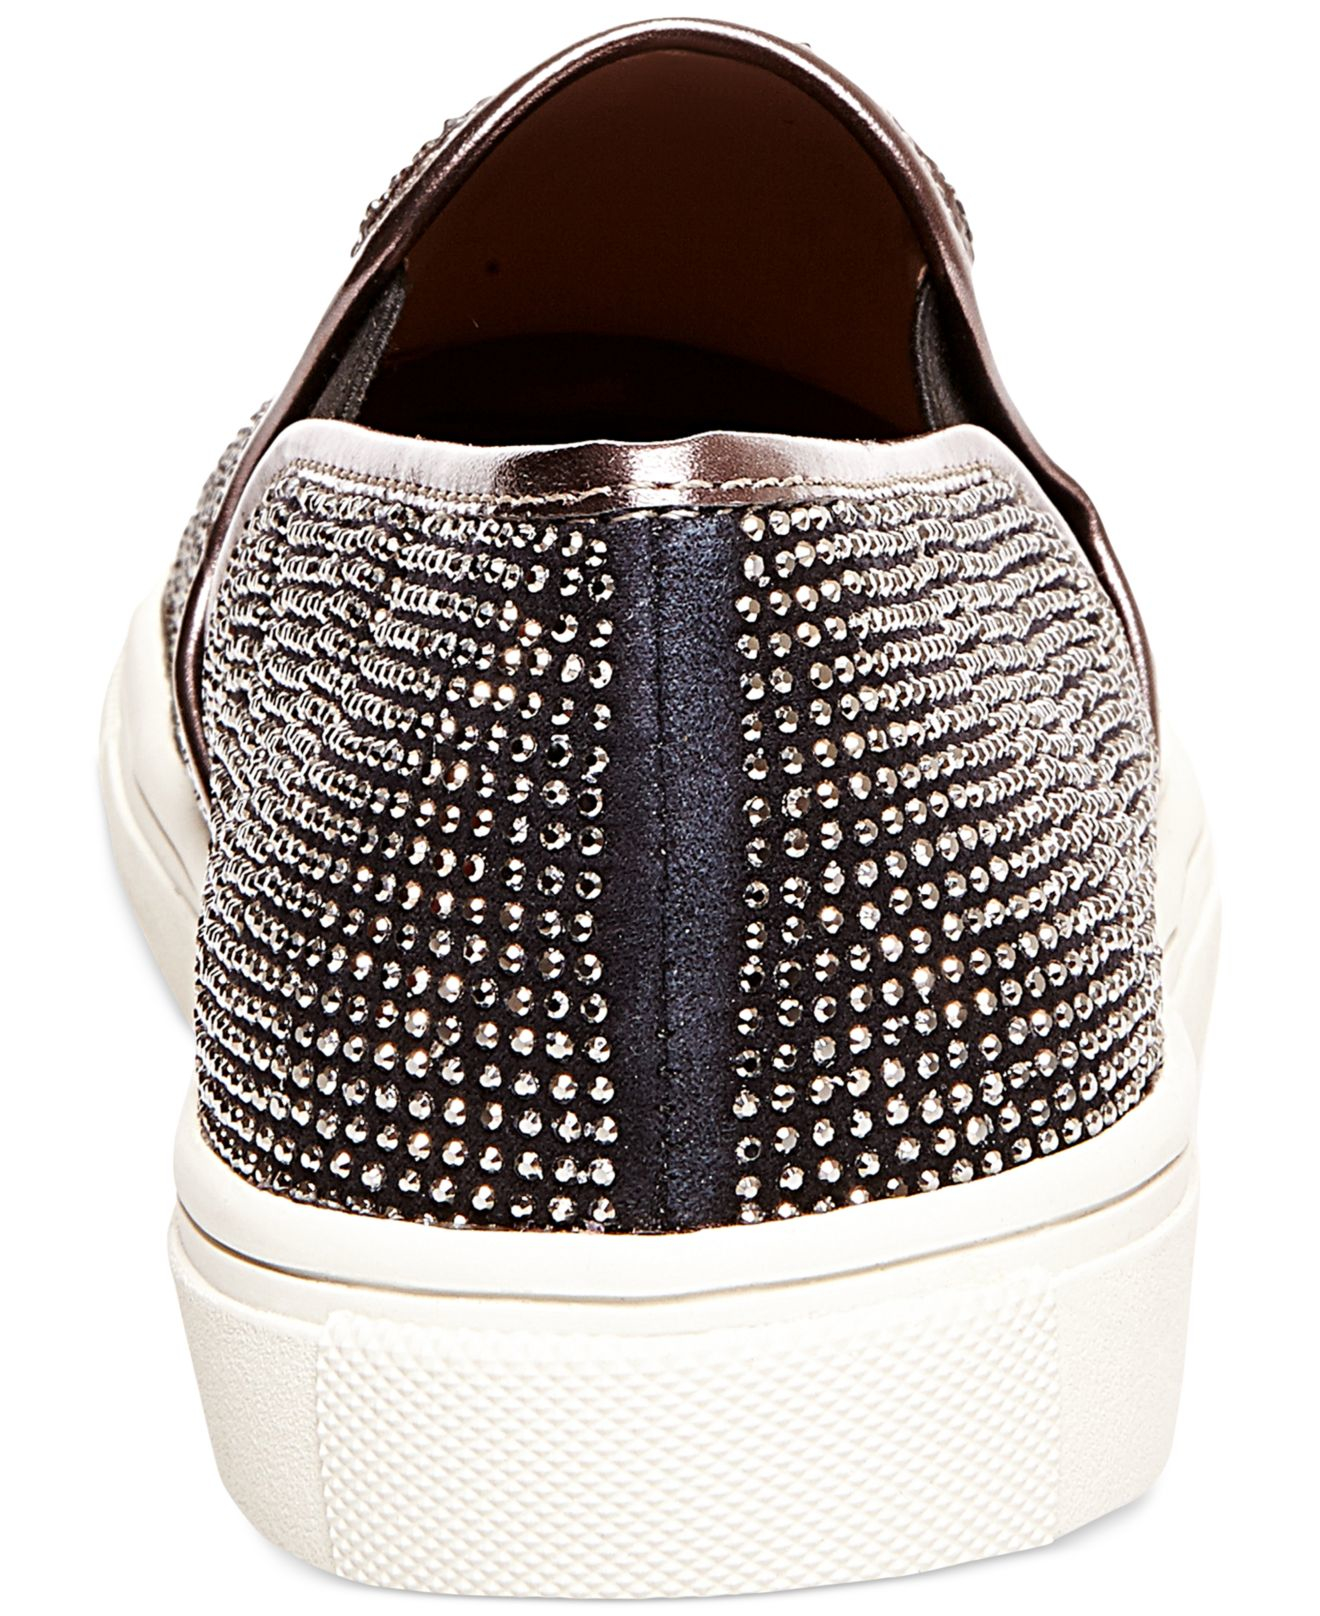 Steve Madden Slip On Tennis Shoes